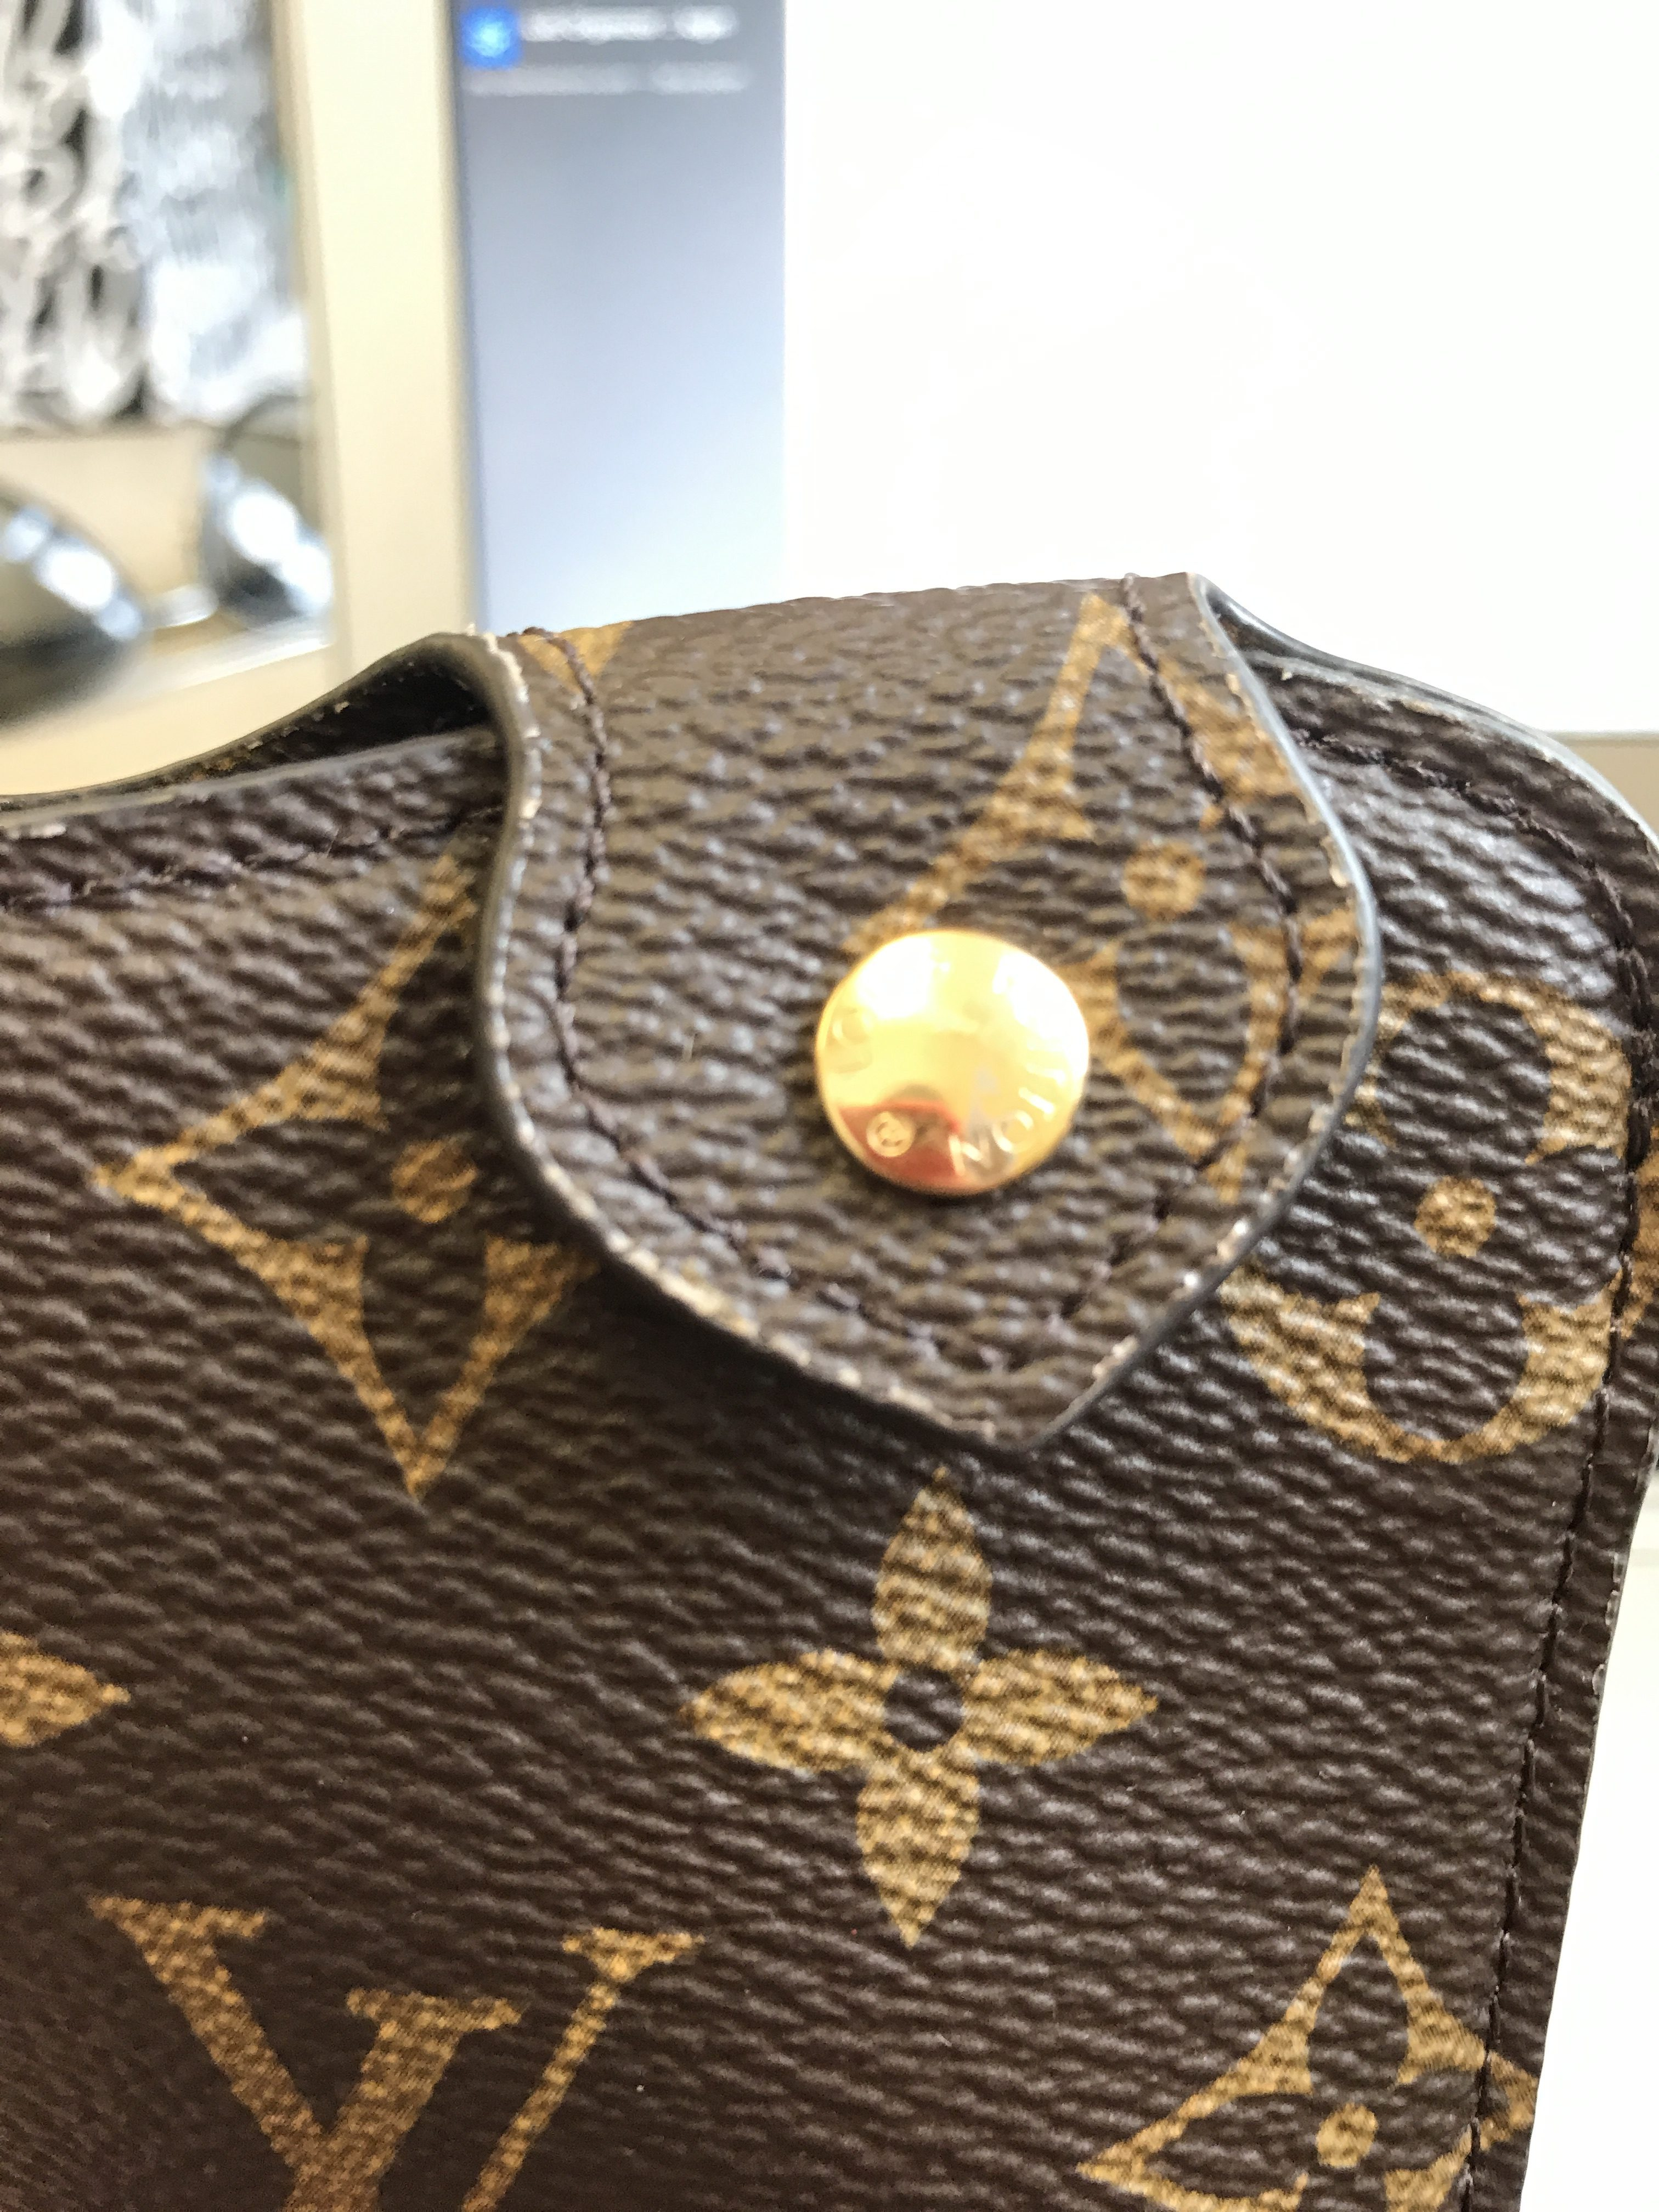 louis vuitton consumer behaviour Free essay: 1 executive summary in this article you will get to know about 3 top  competitive luxury brands, louis vuitton, chanel and gucci.